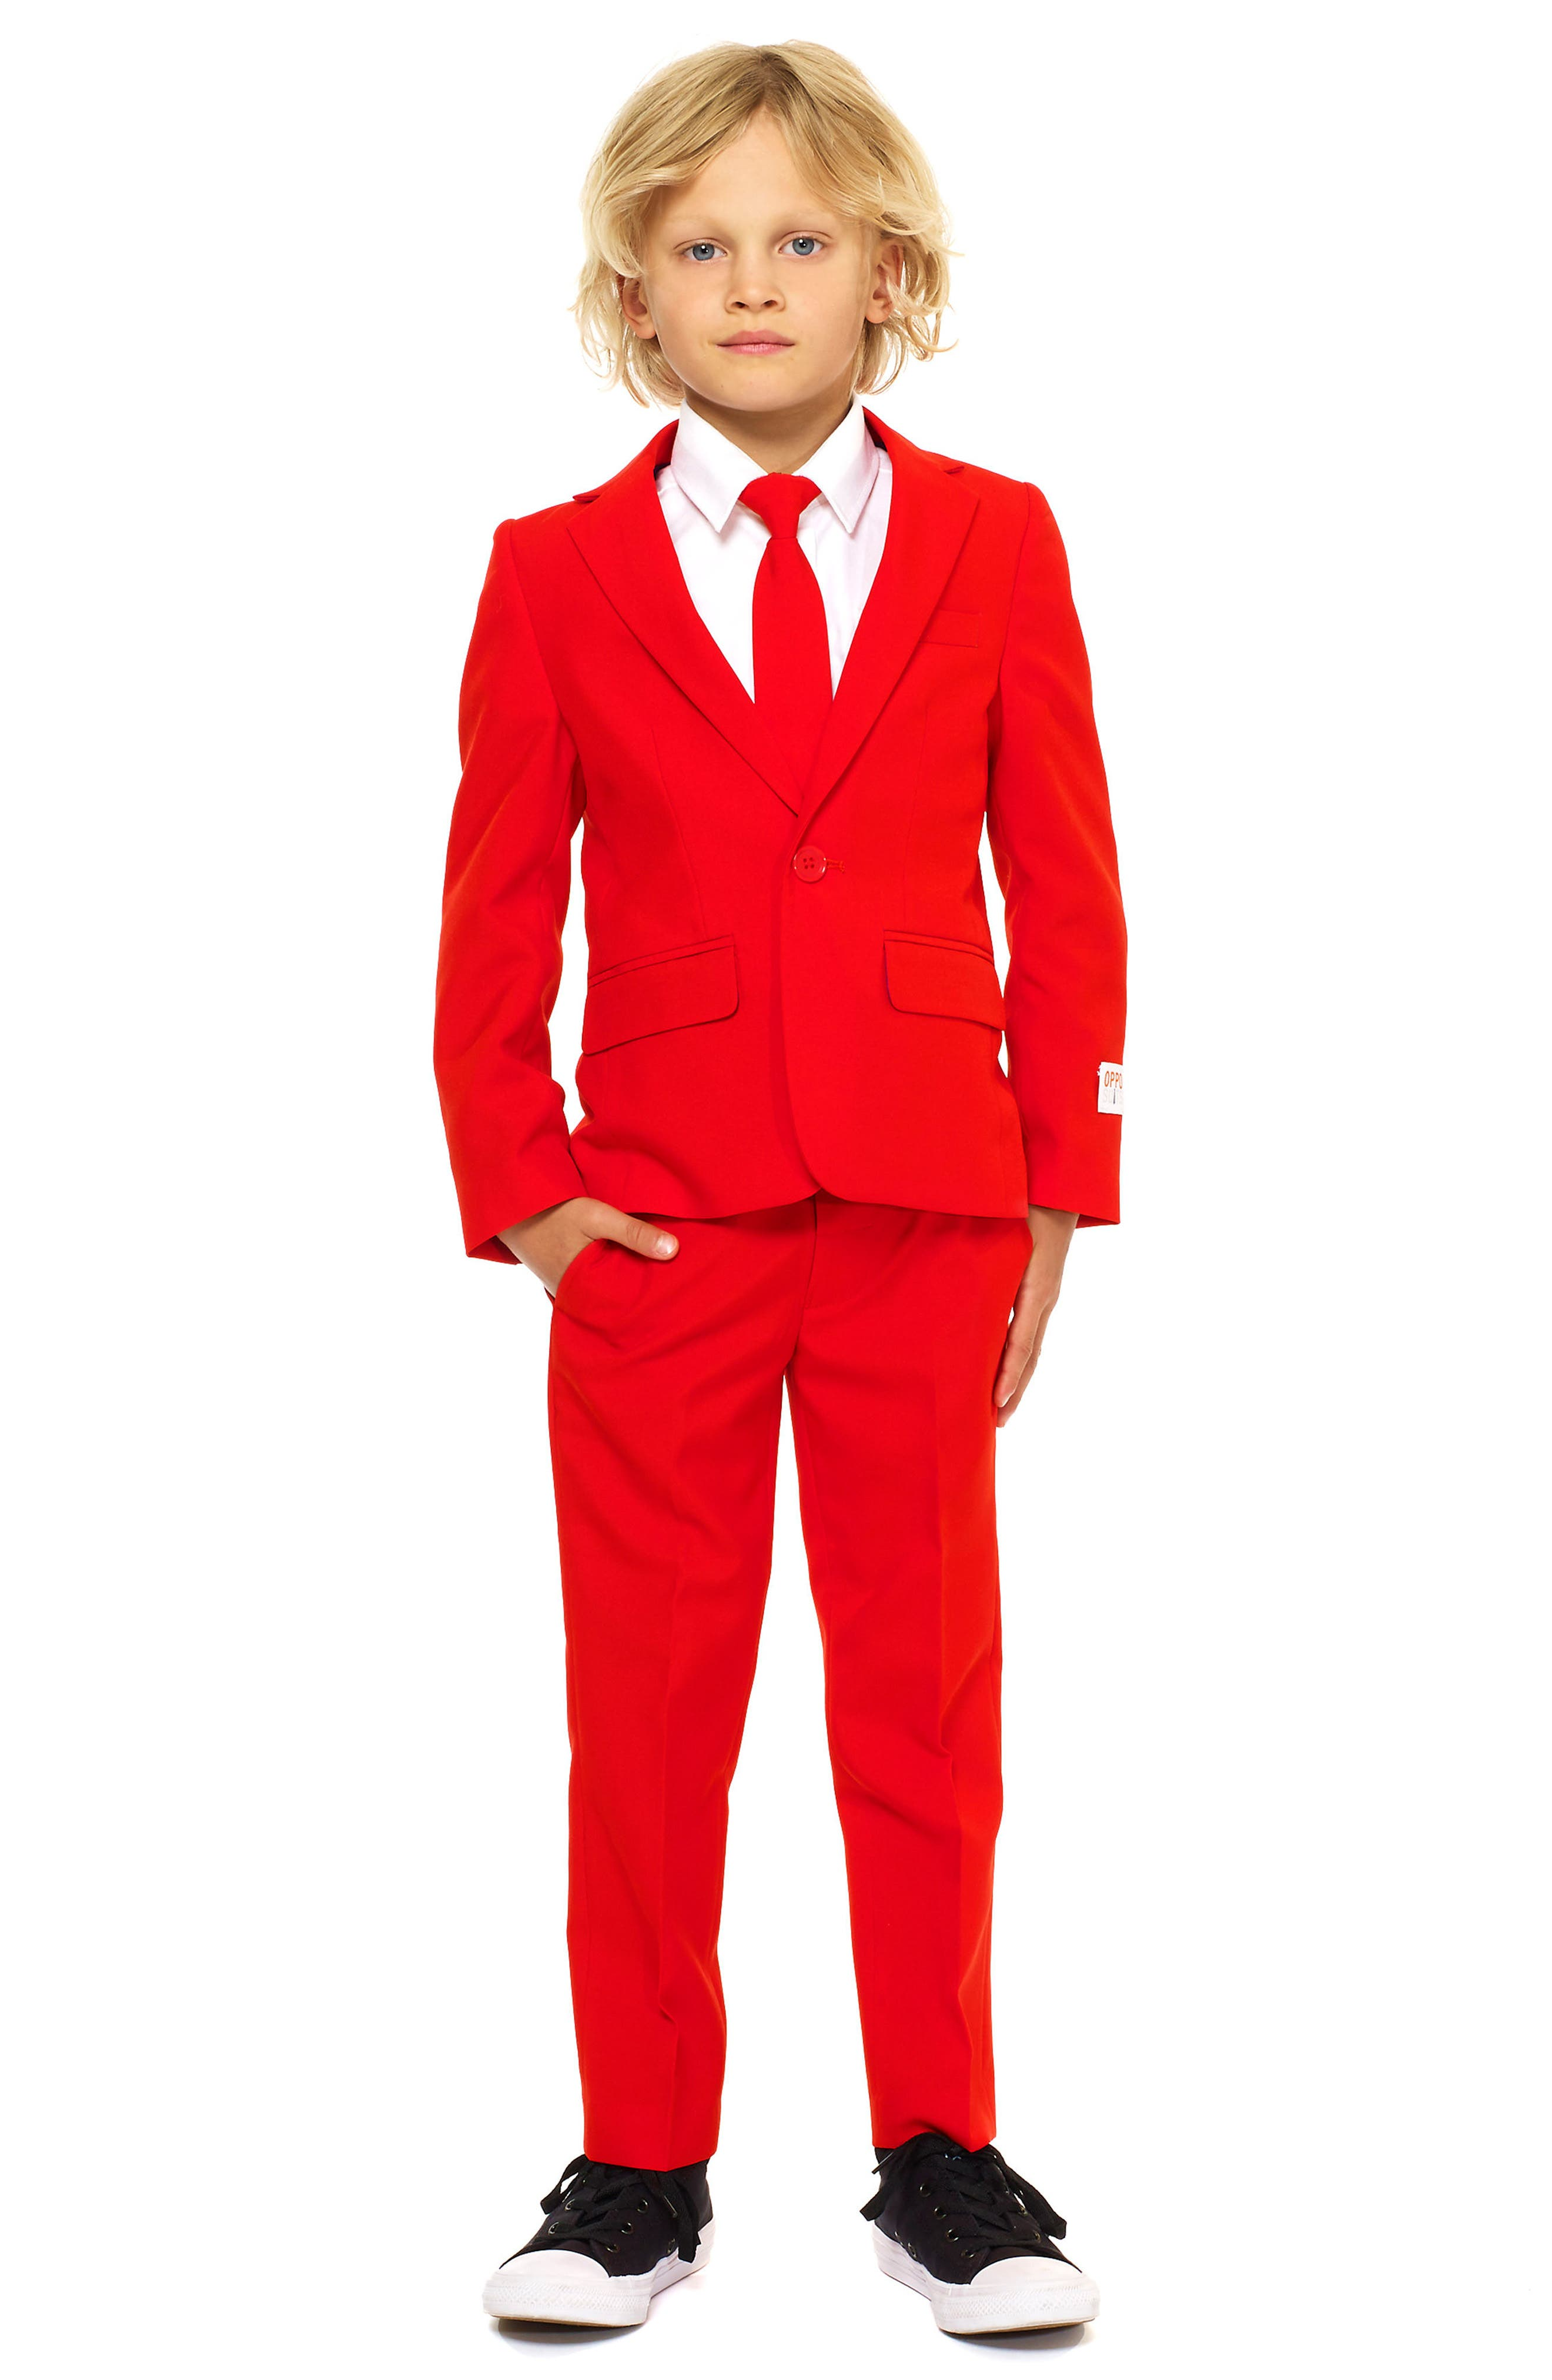 Oppo Red Devil Two-Piece Suit with Tie,                             Main thumbnail 1, color,                             Red